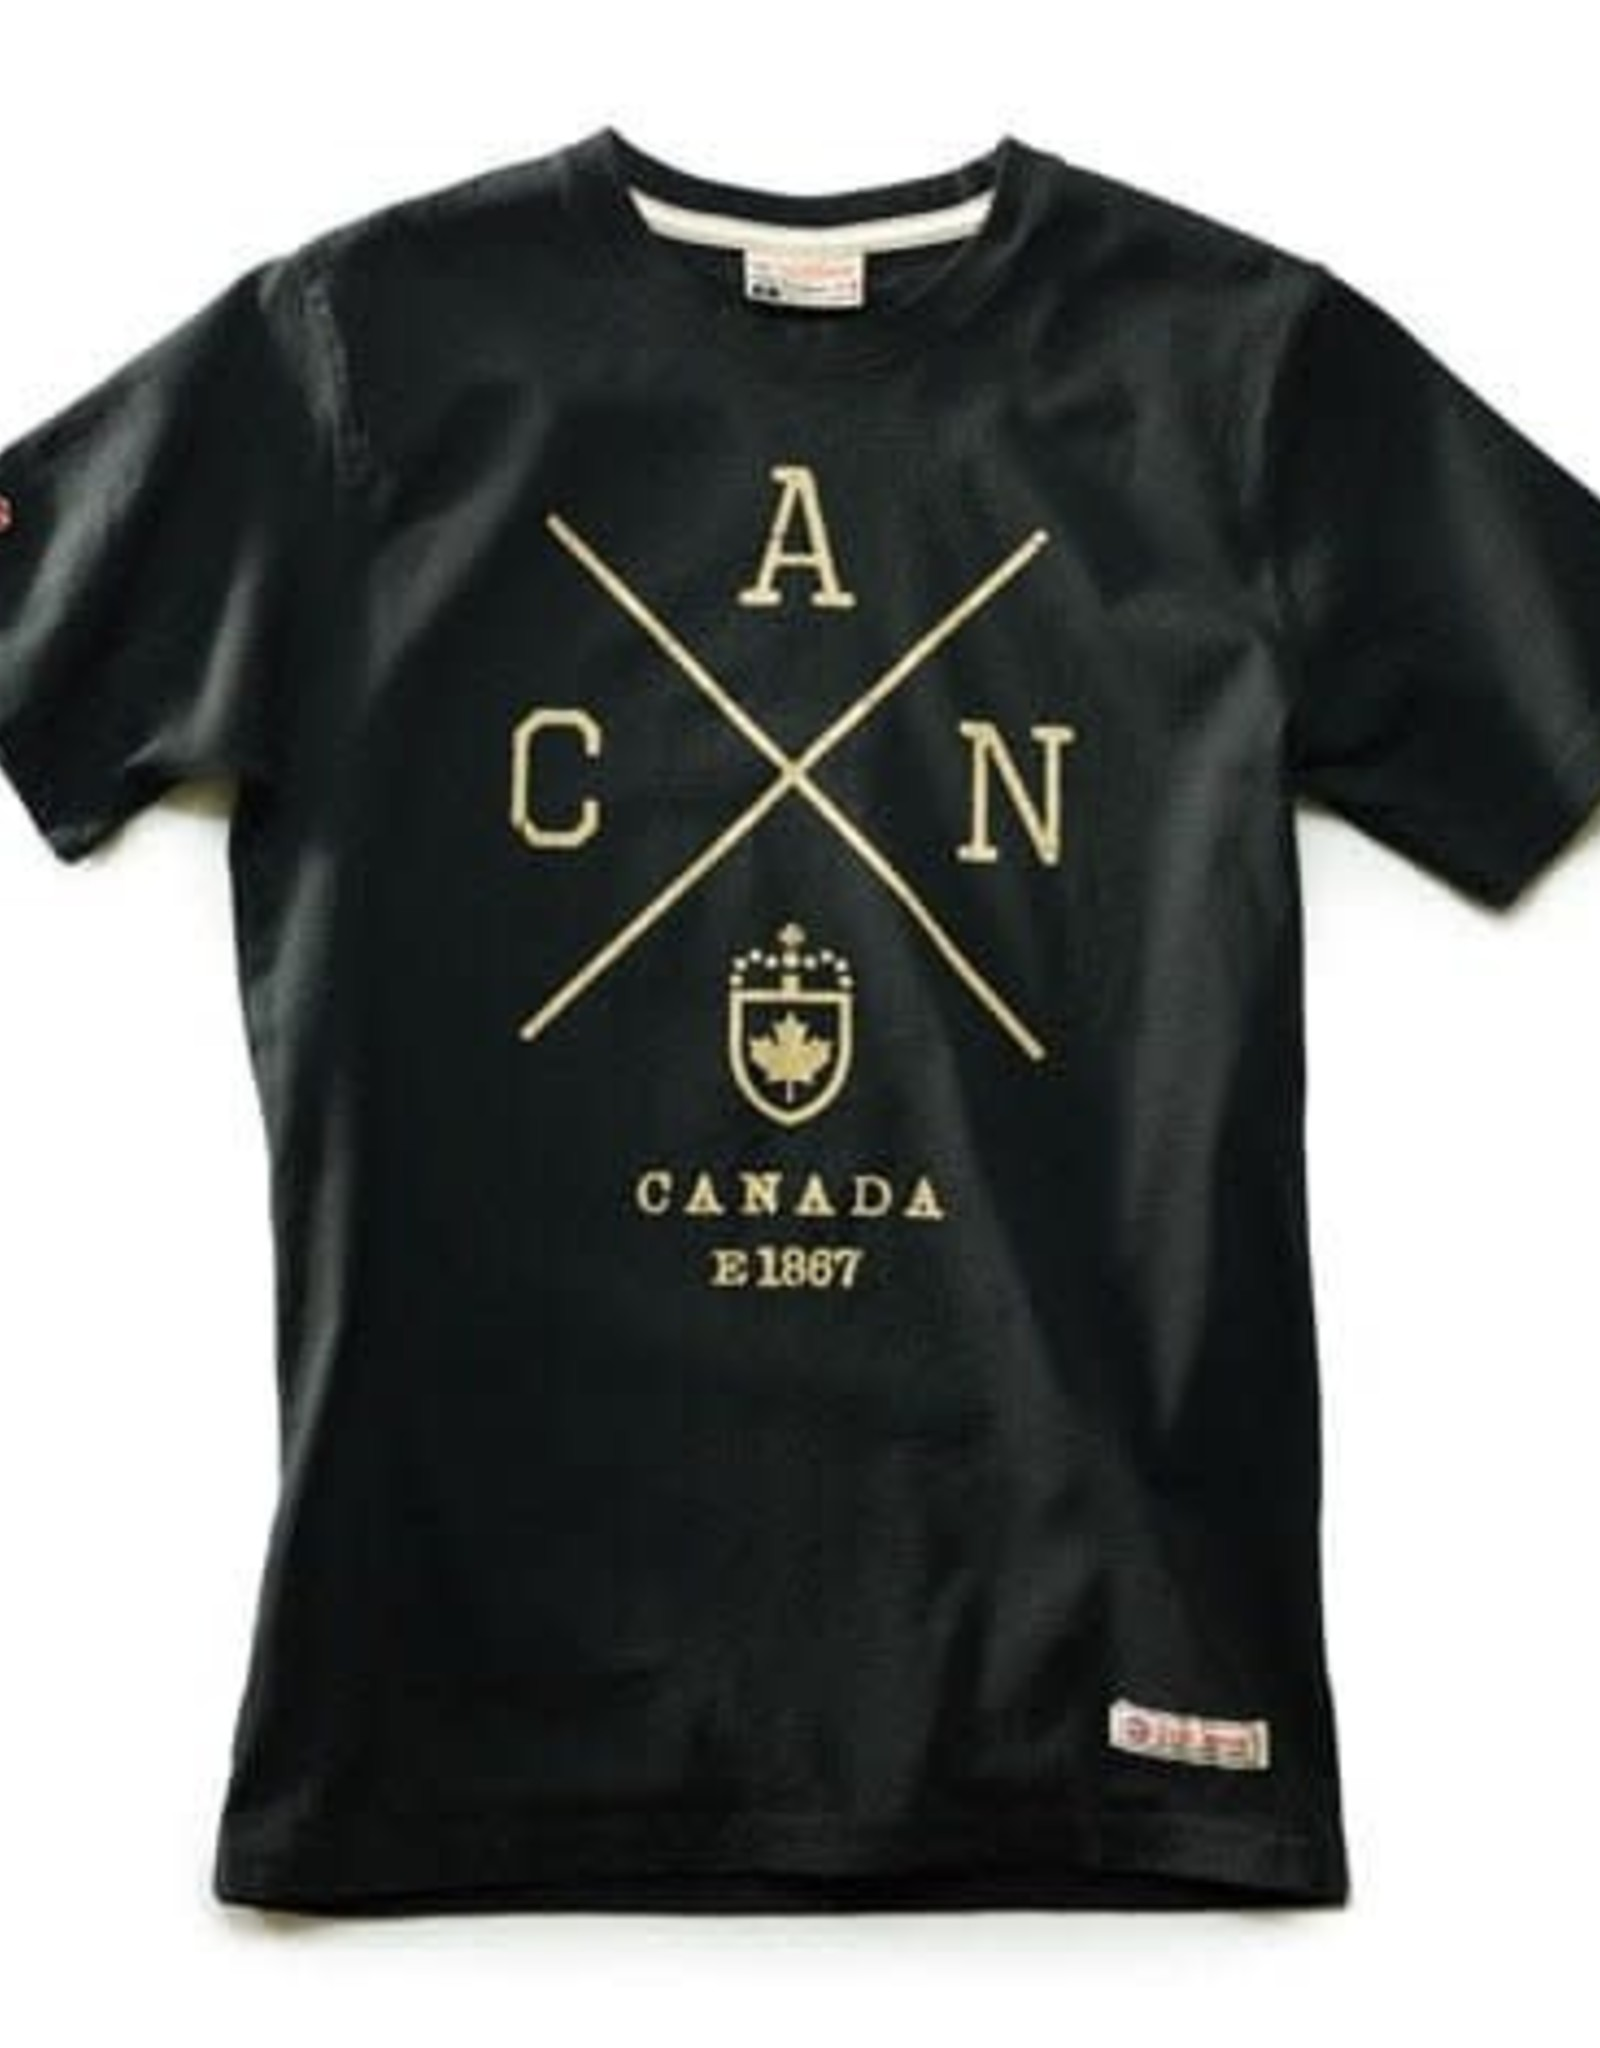 RED CANOE Red Canoe Cross Canada TShirt